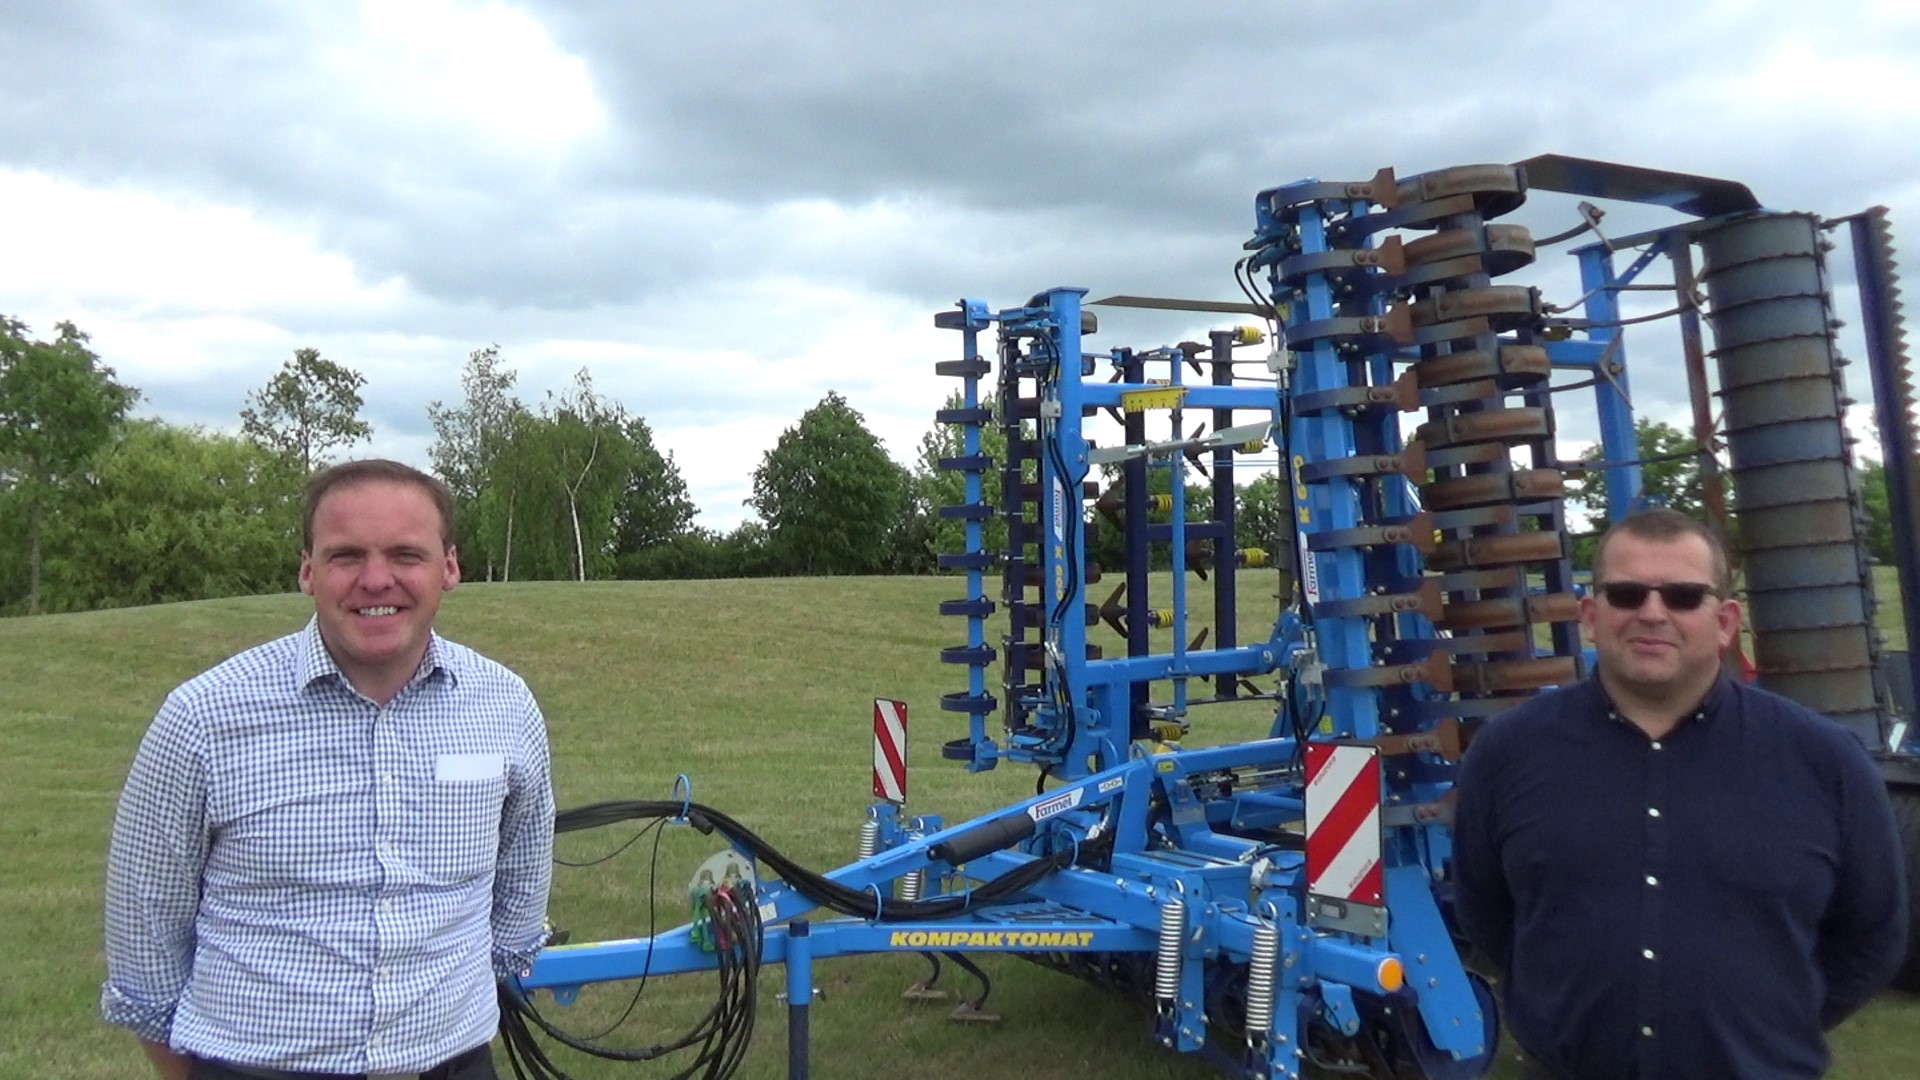 Brock & Farmet Machinery from J Brock & Sons - Cereals Live 2020